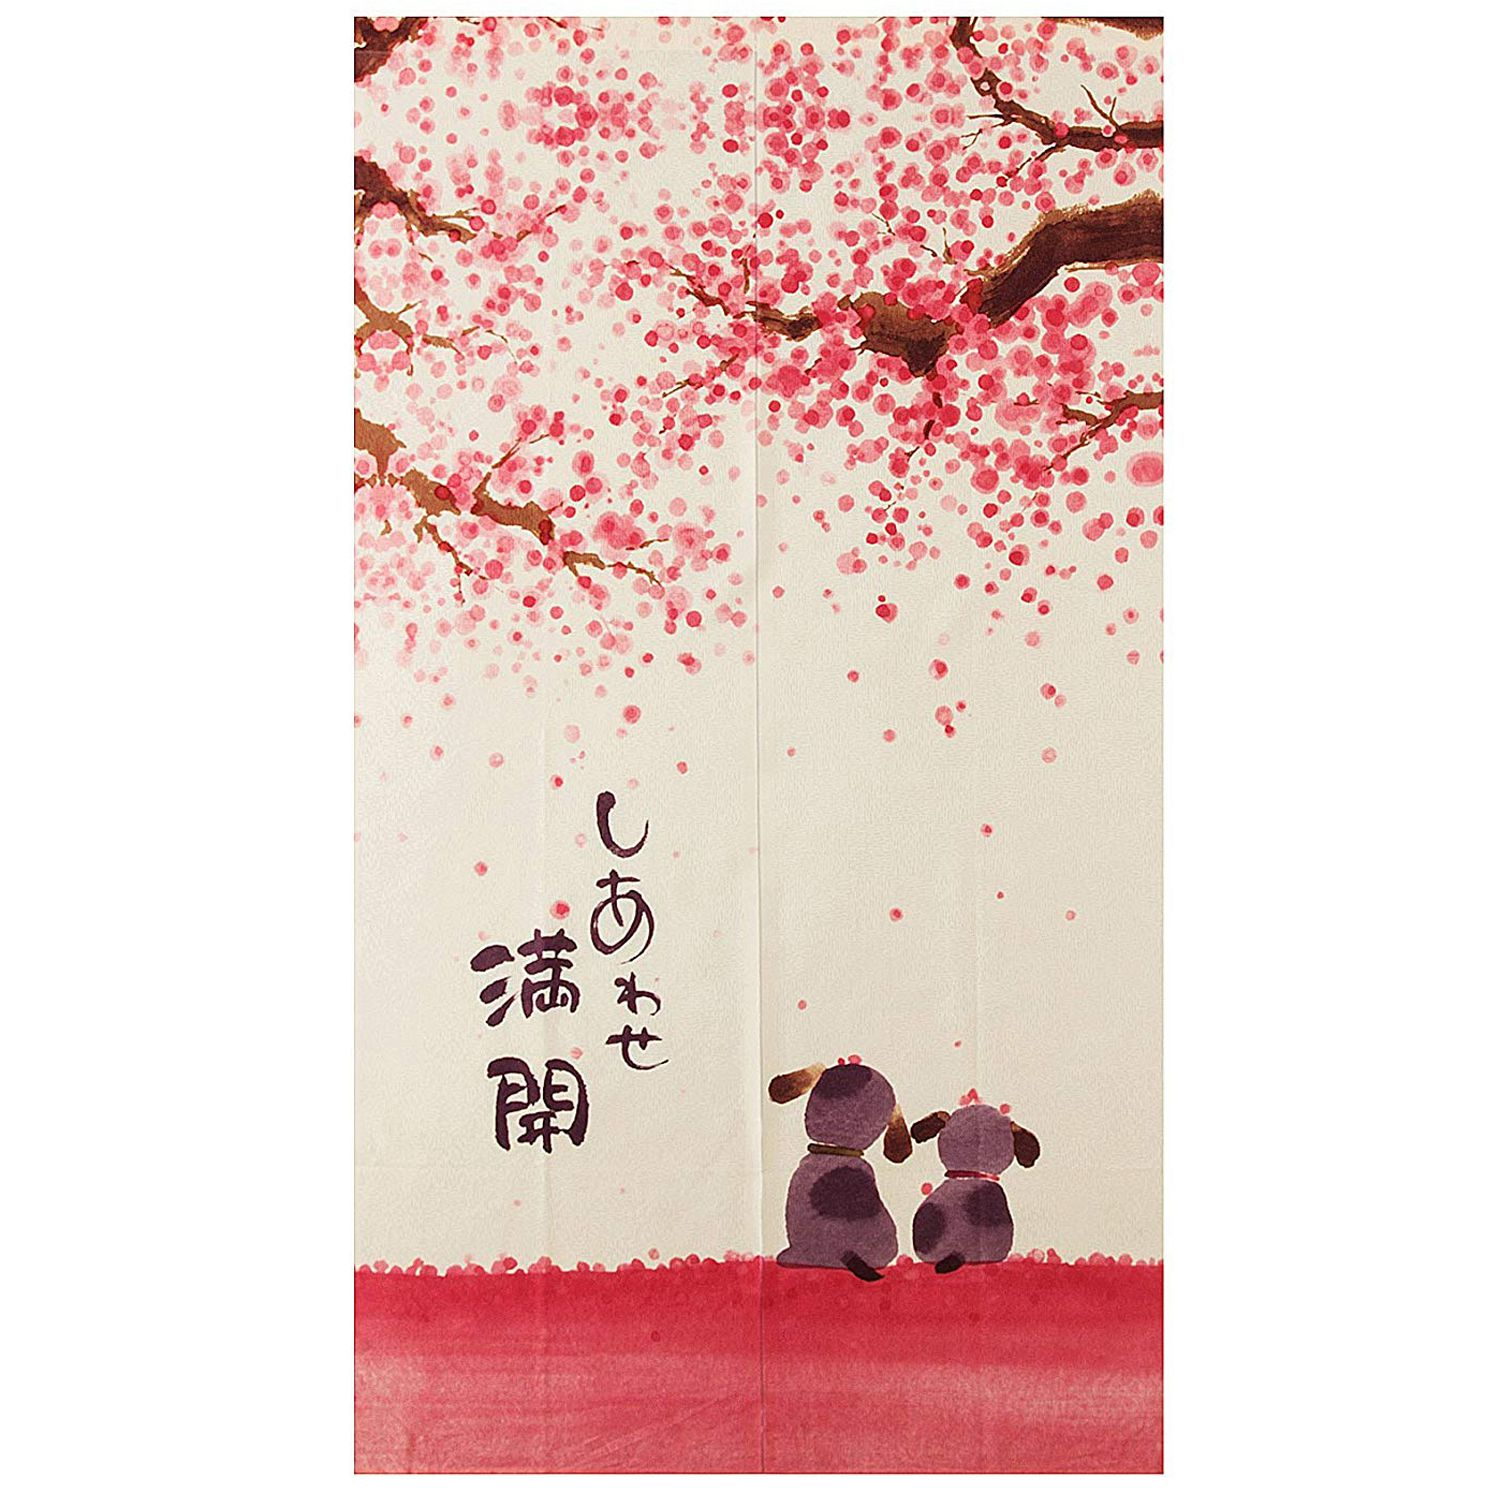 Botique-Japanese Style Doorway Curtain 85X150Cm Happy Dogs Cherry Blossom